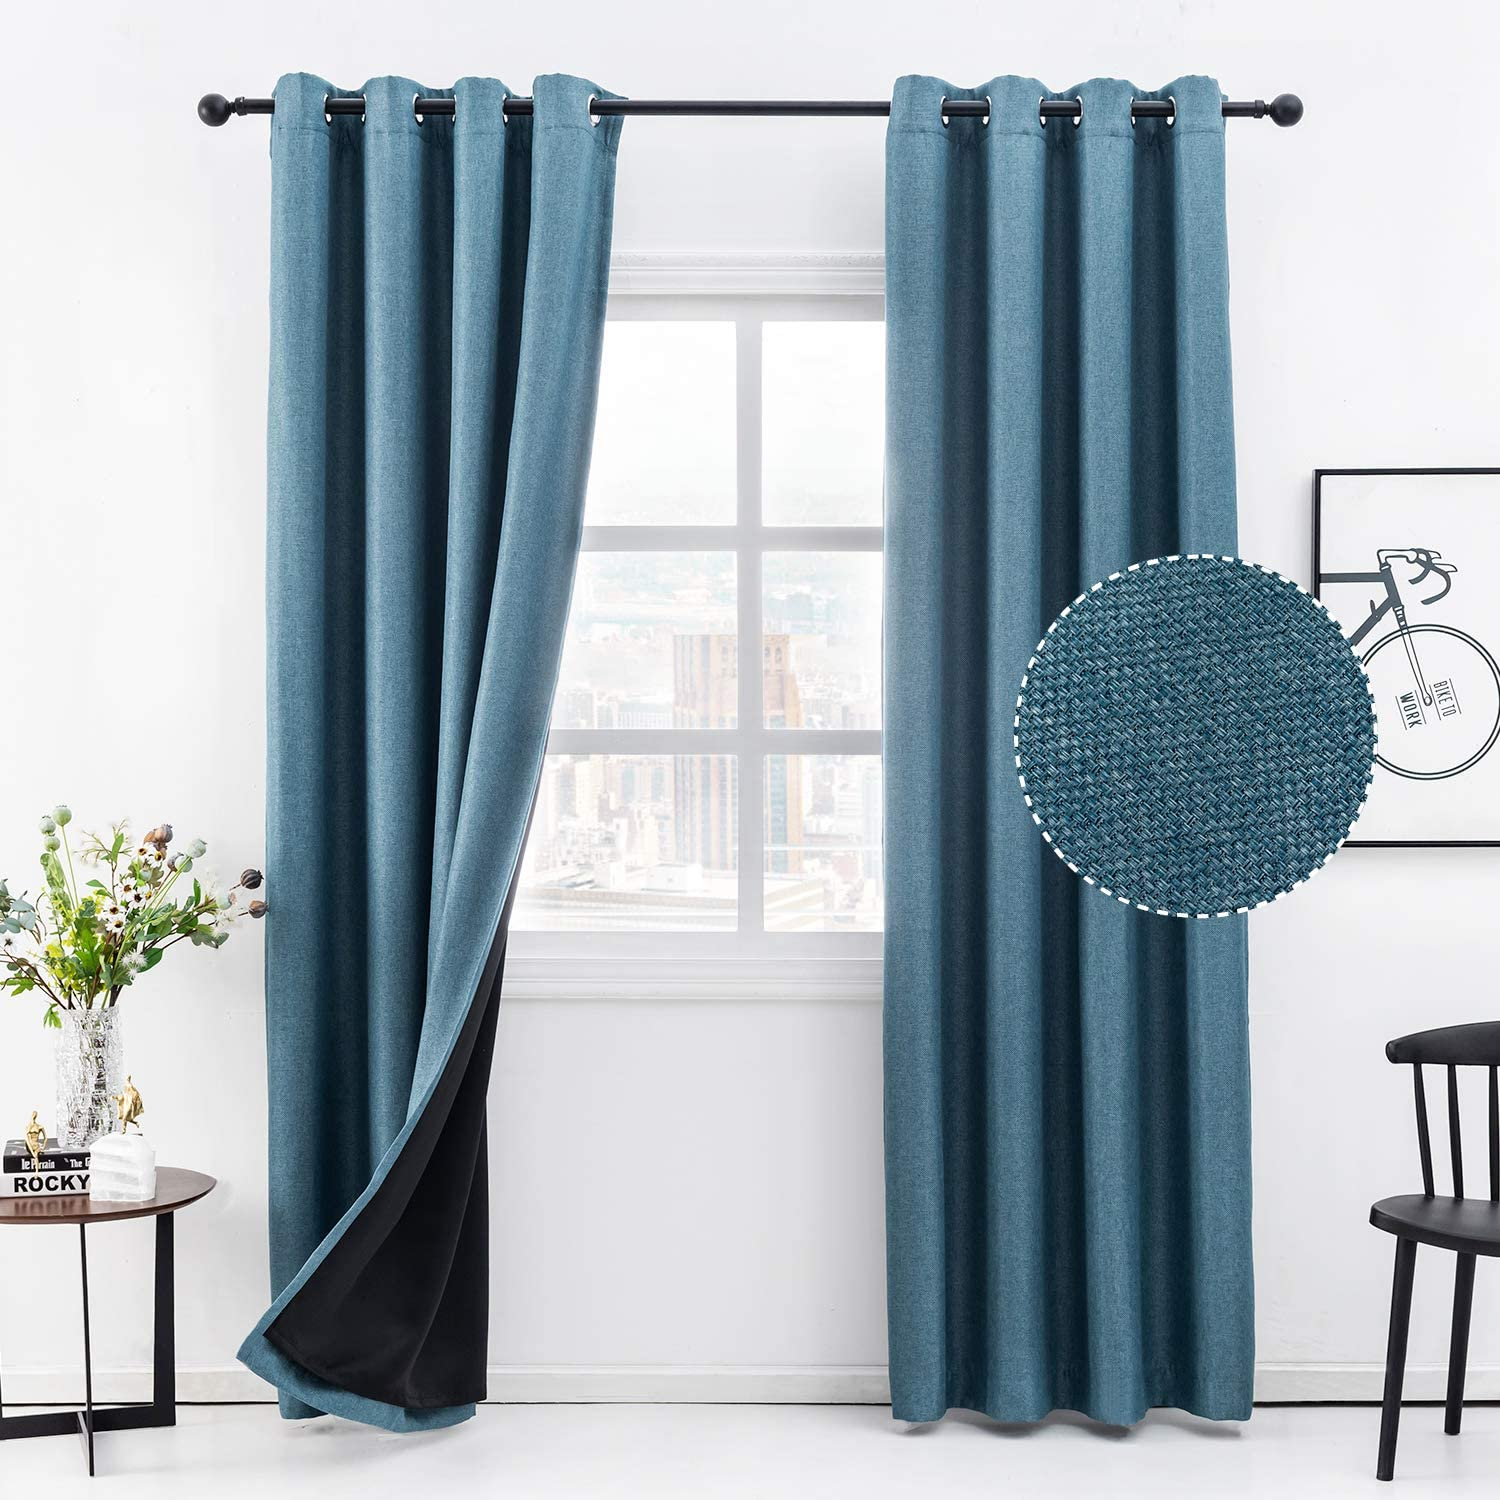 Anjee Linen Curtain for Bedroom 63 Inches 100% Blackout Curtain Total Room Darkening Blue Window Curtain Noise Reducing Thermal Insulated Drapes Grommet Panels Home Decor Gifts,Blue 52x63 Inches